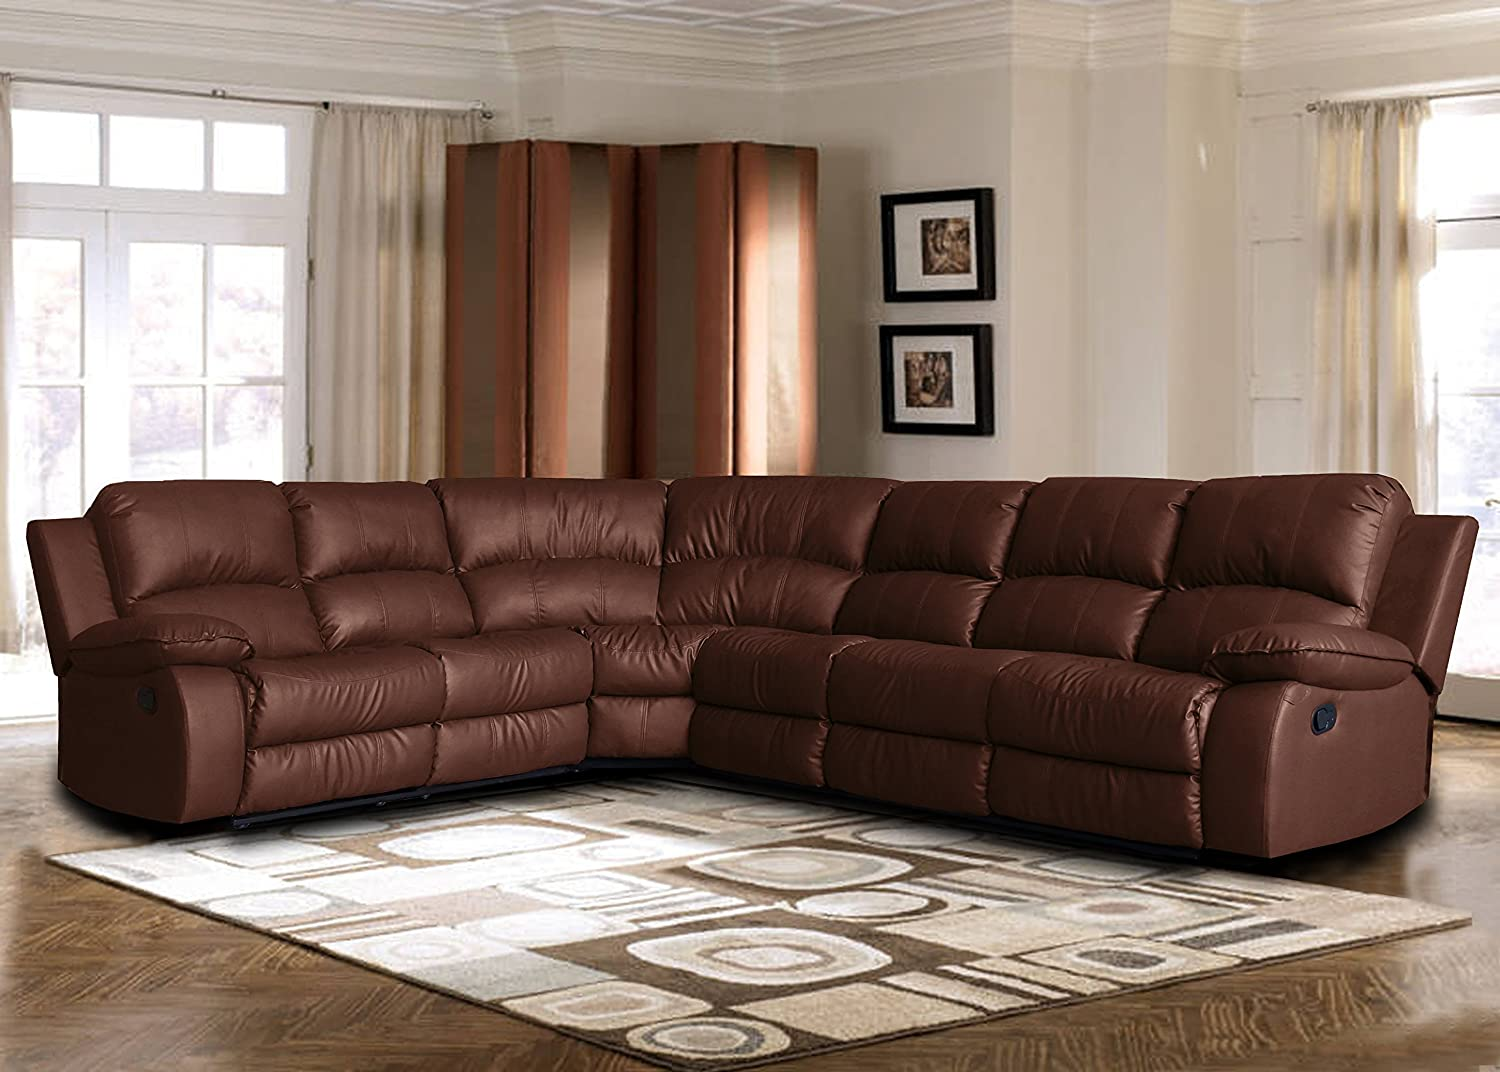 Amazon.com: Large Classic Sofa - Sectional - Traditional - Bonded ...